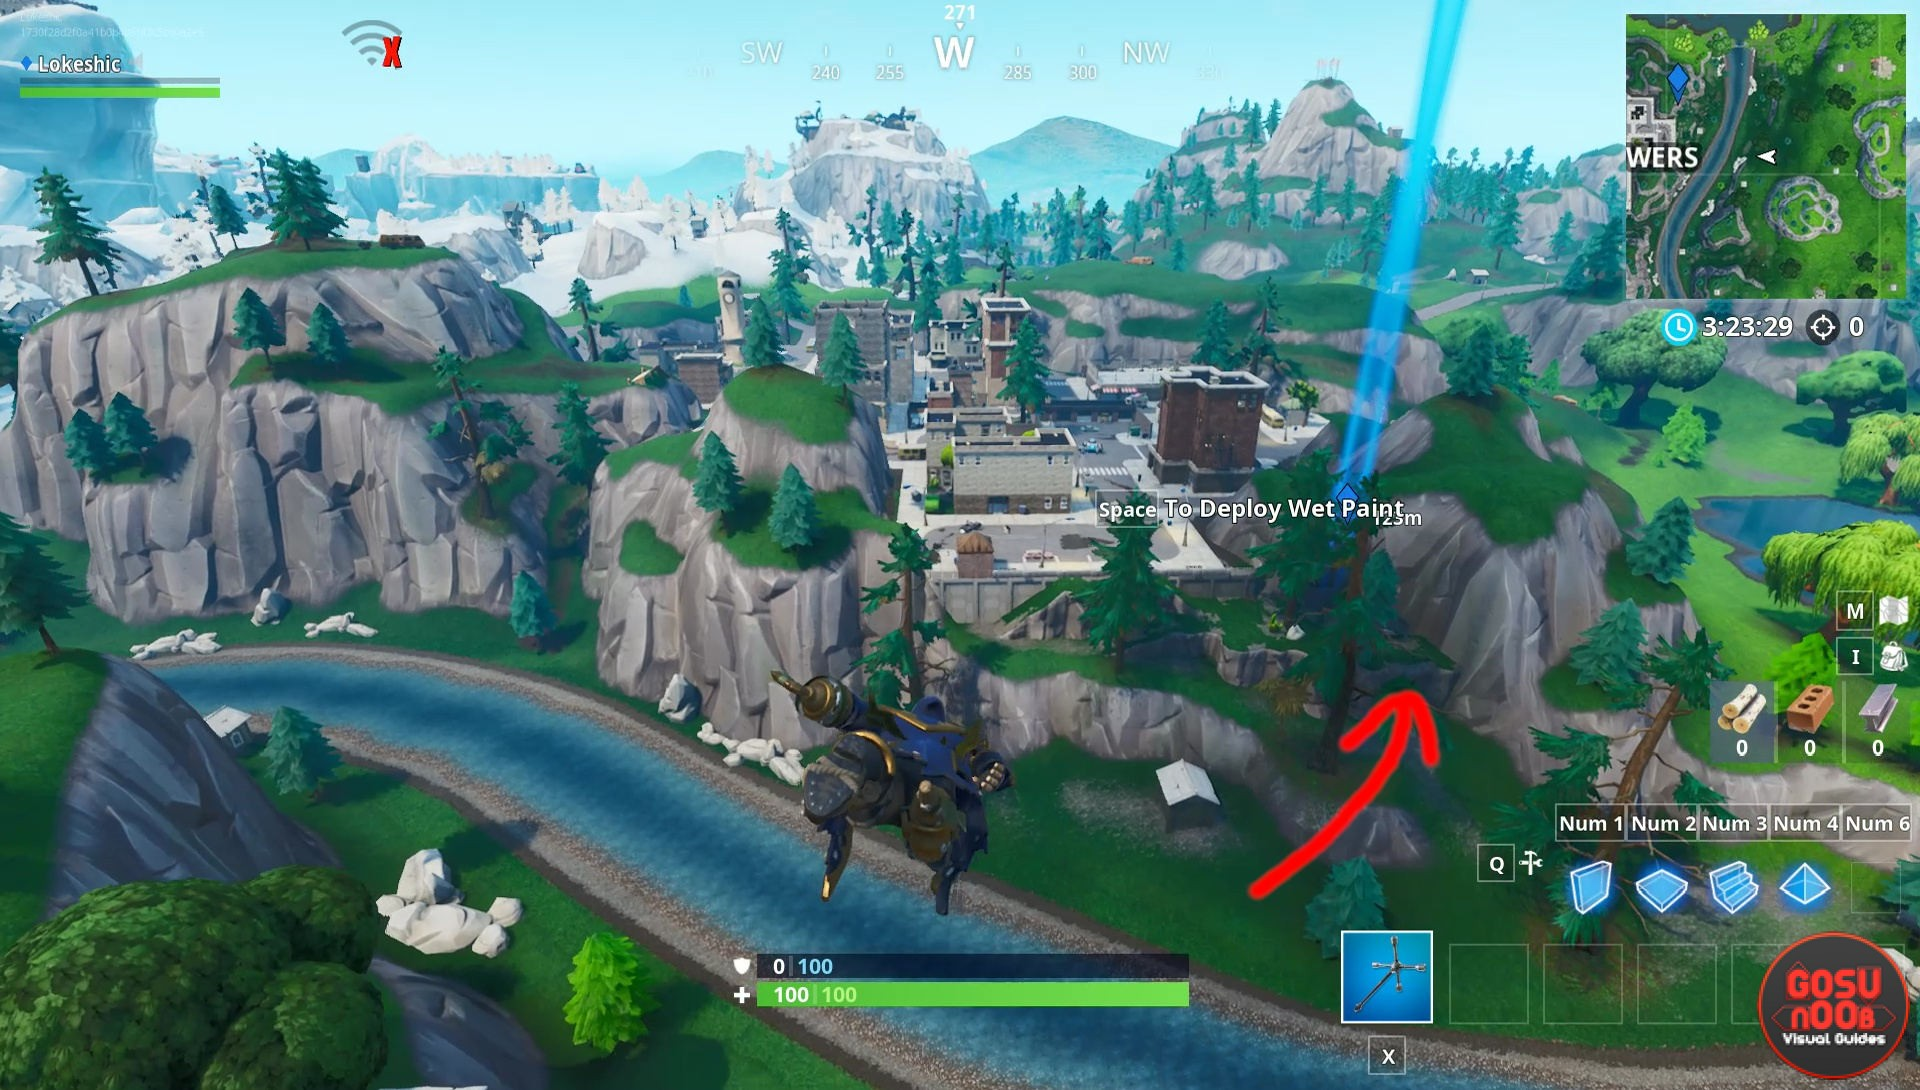 - search puzzle pieces under bridges and in caves fortnite